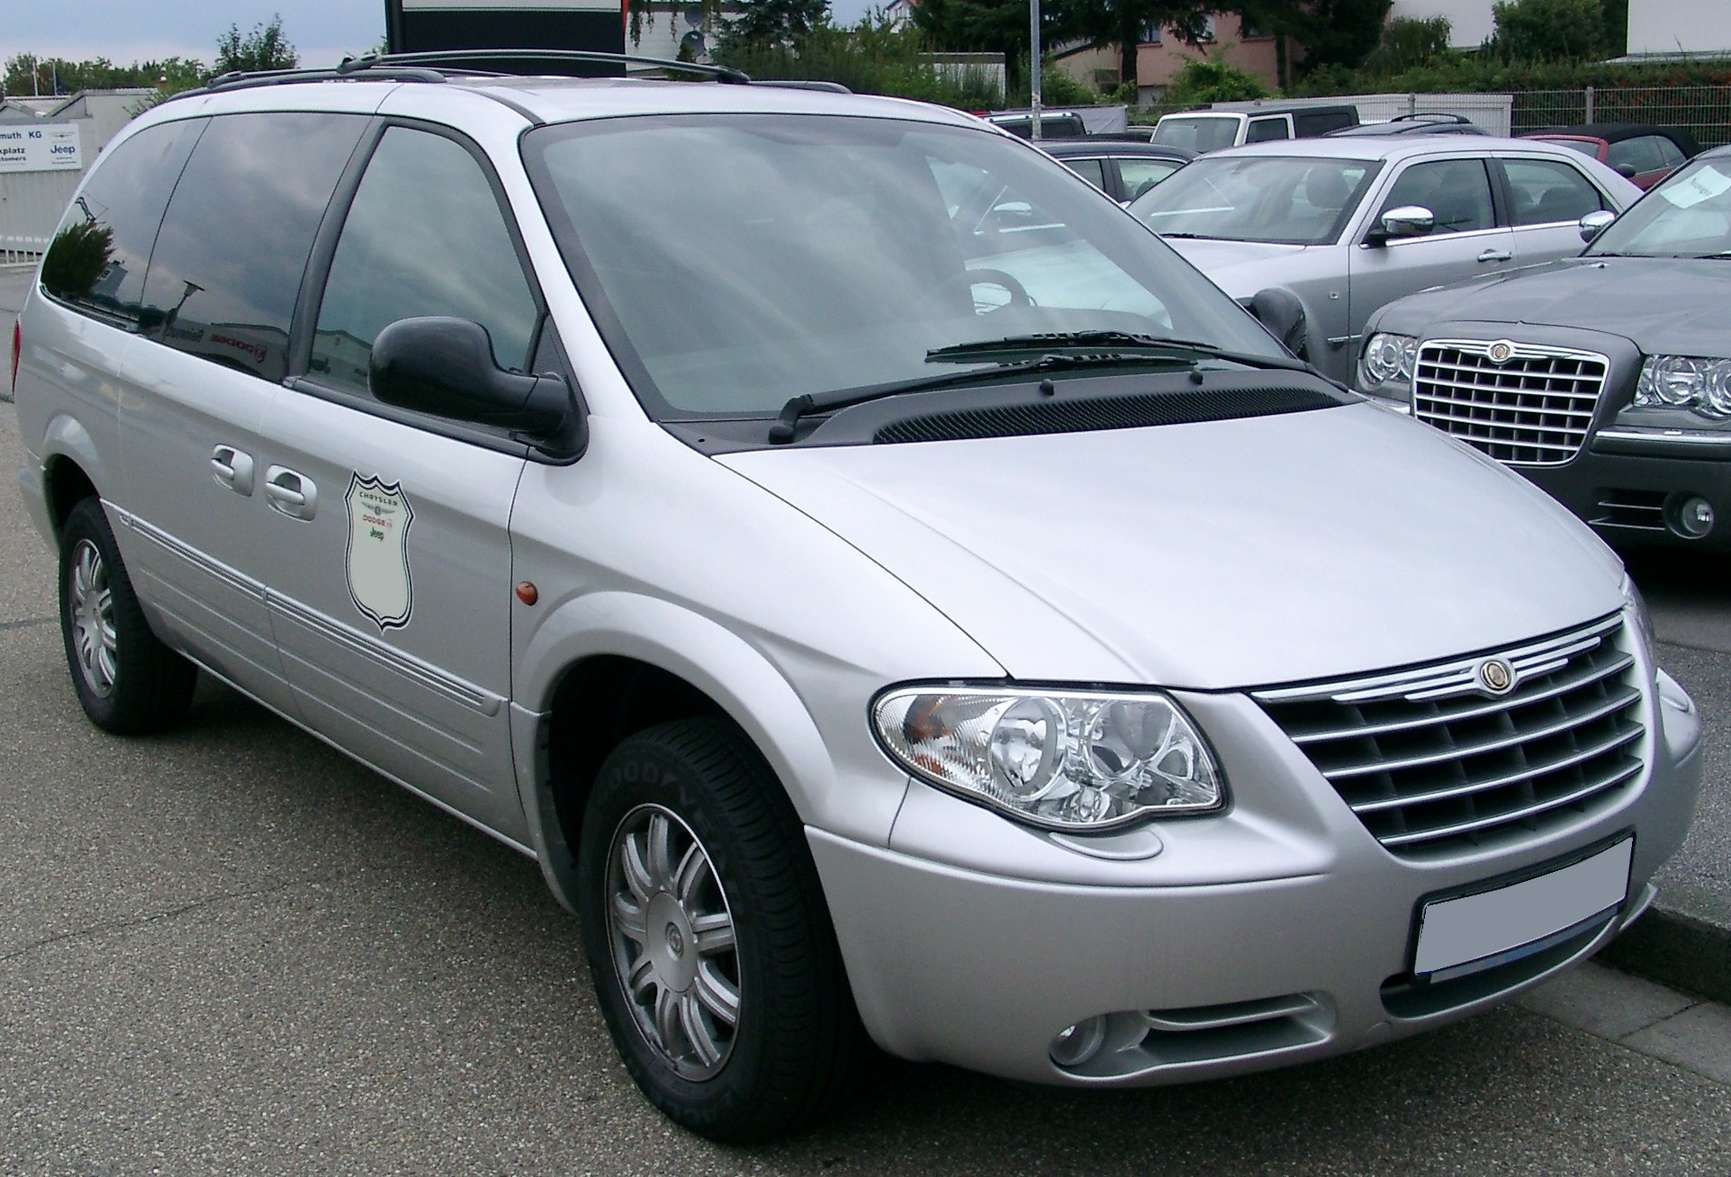 Chrysler Grand Voyager #8731005